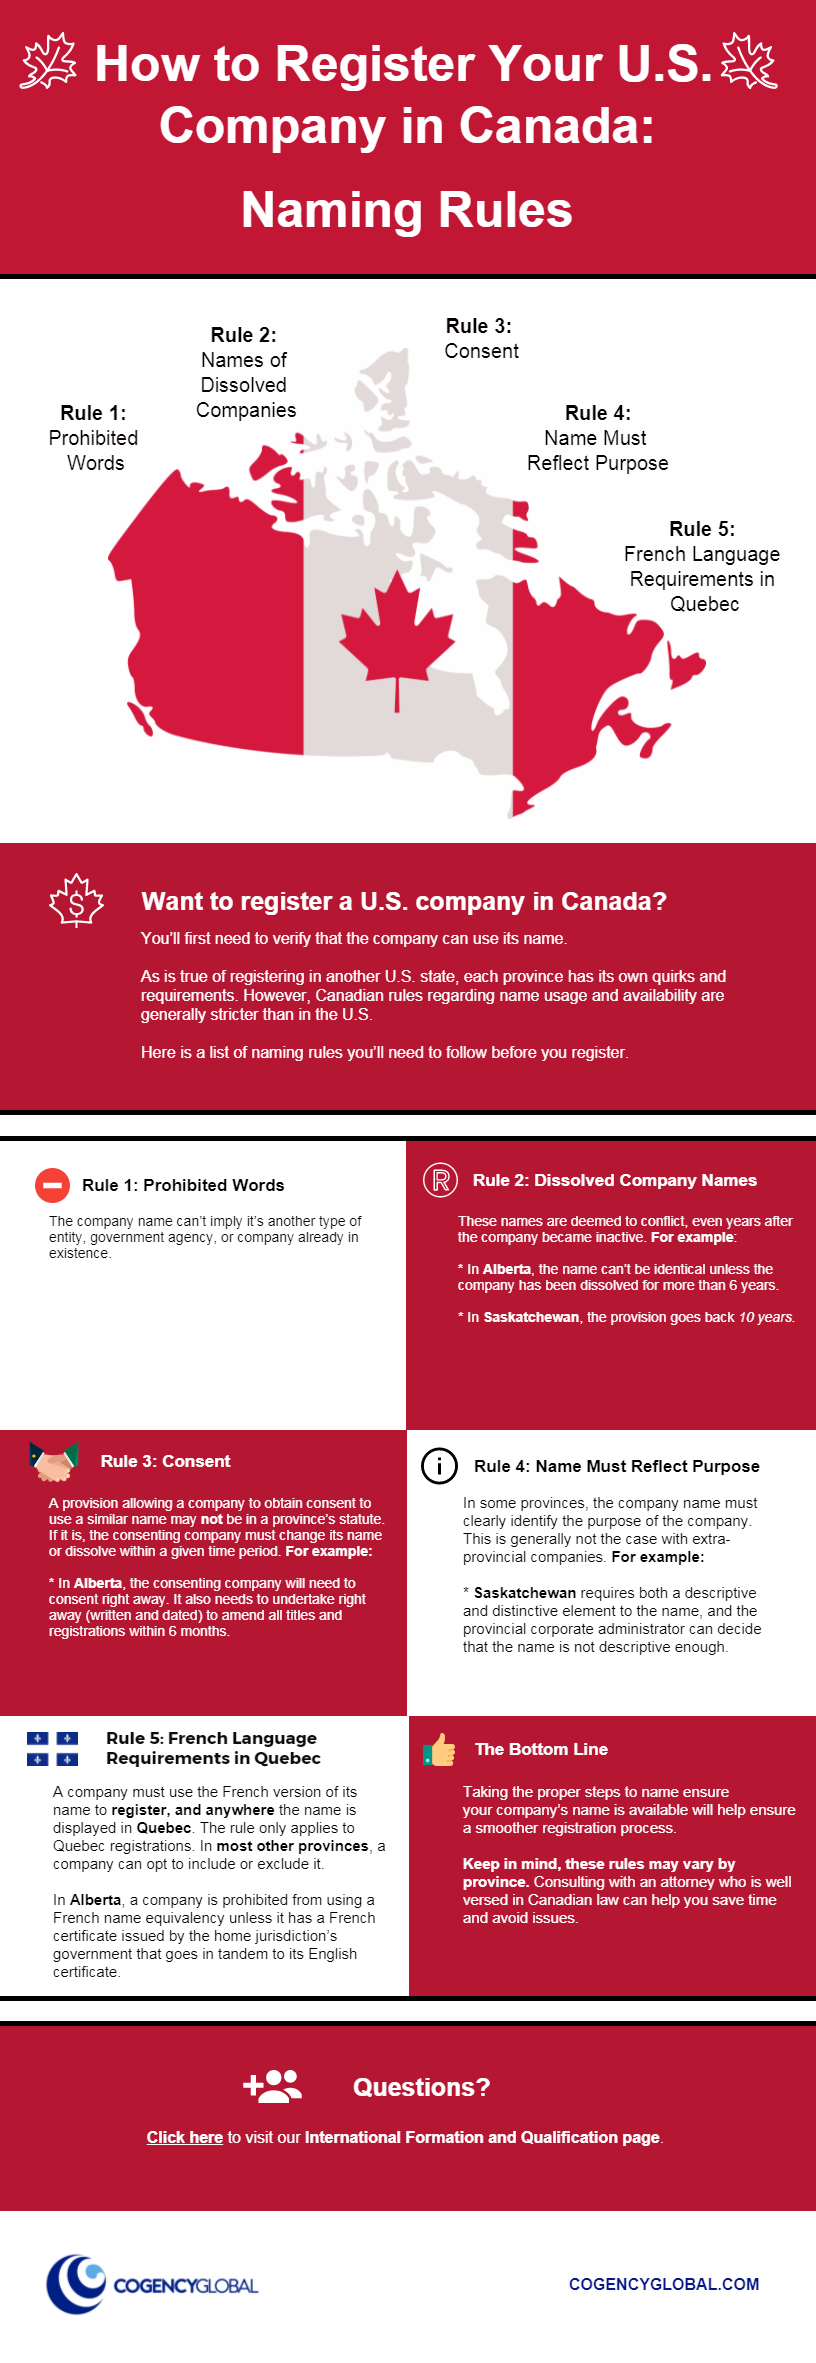 How to Register Your US Company in Canada_Naming Rules_Infographic_FINAL-3.png